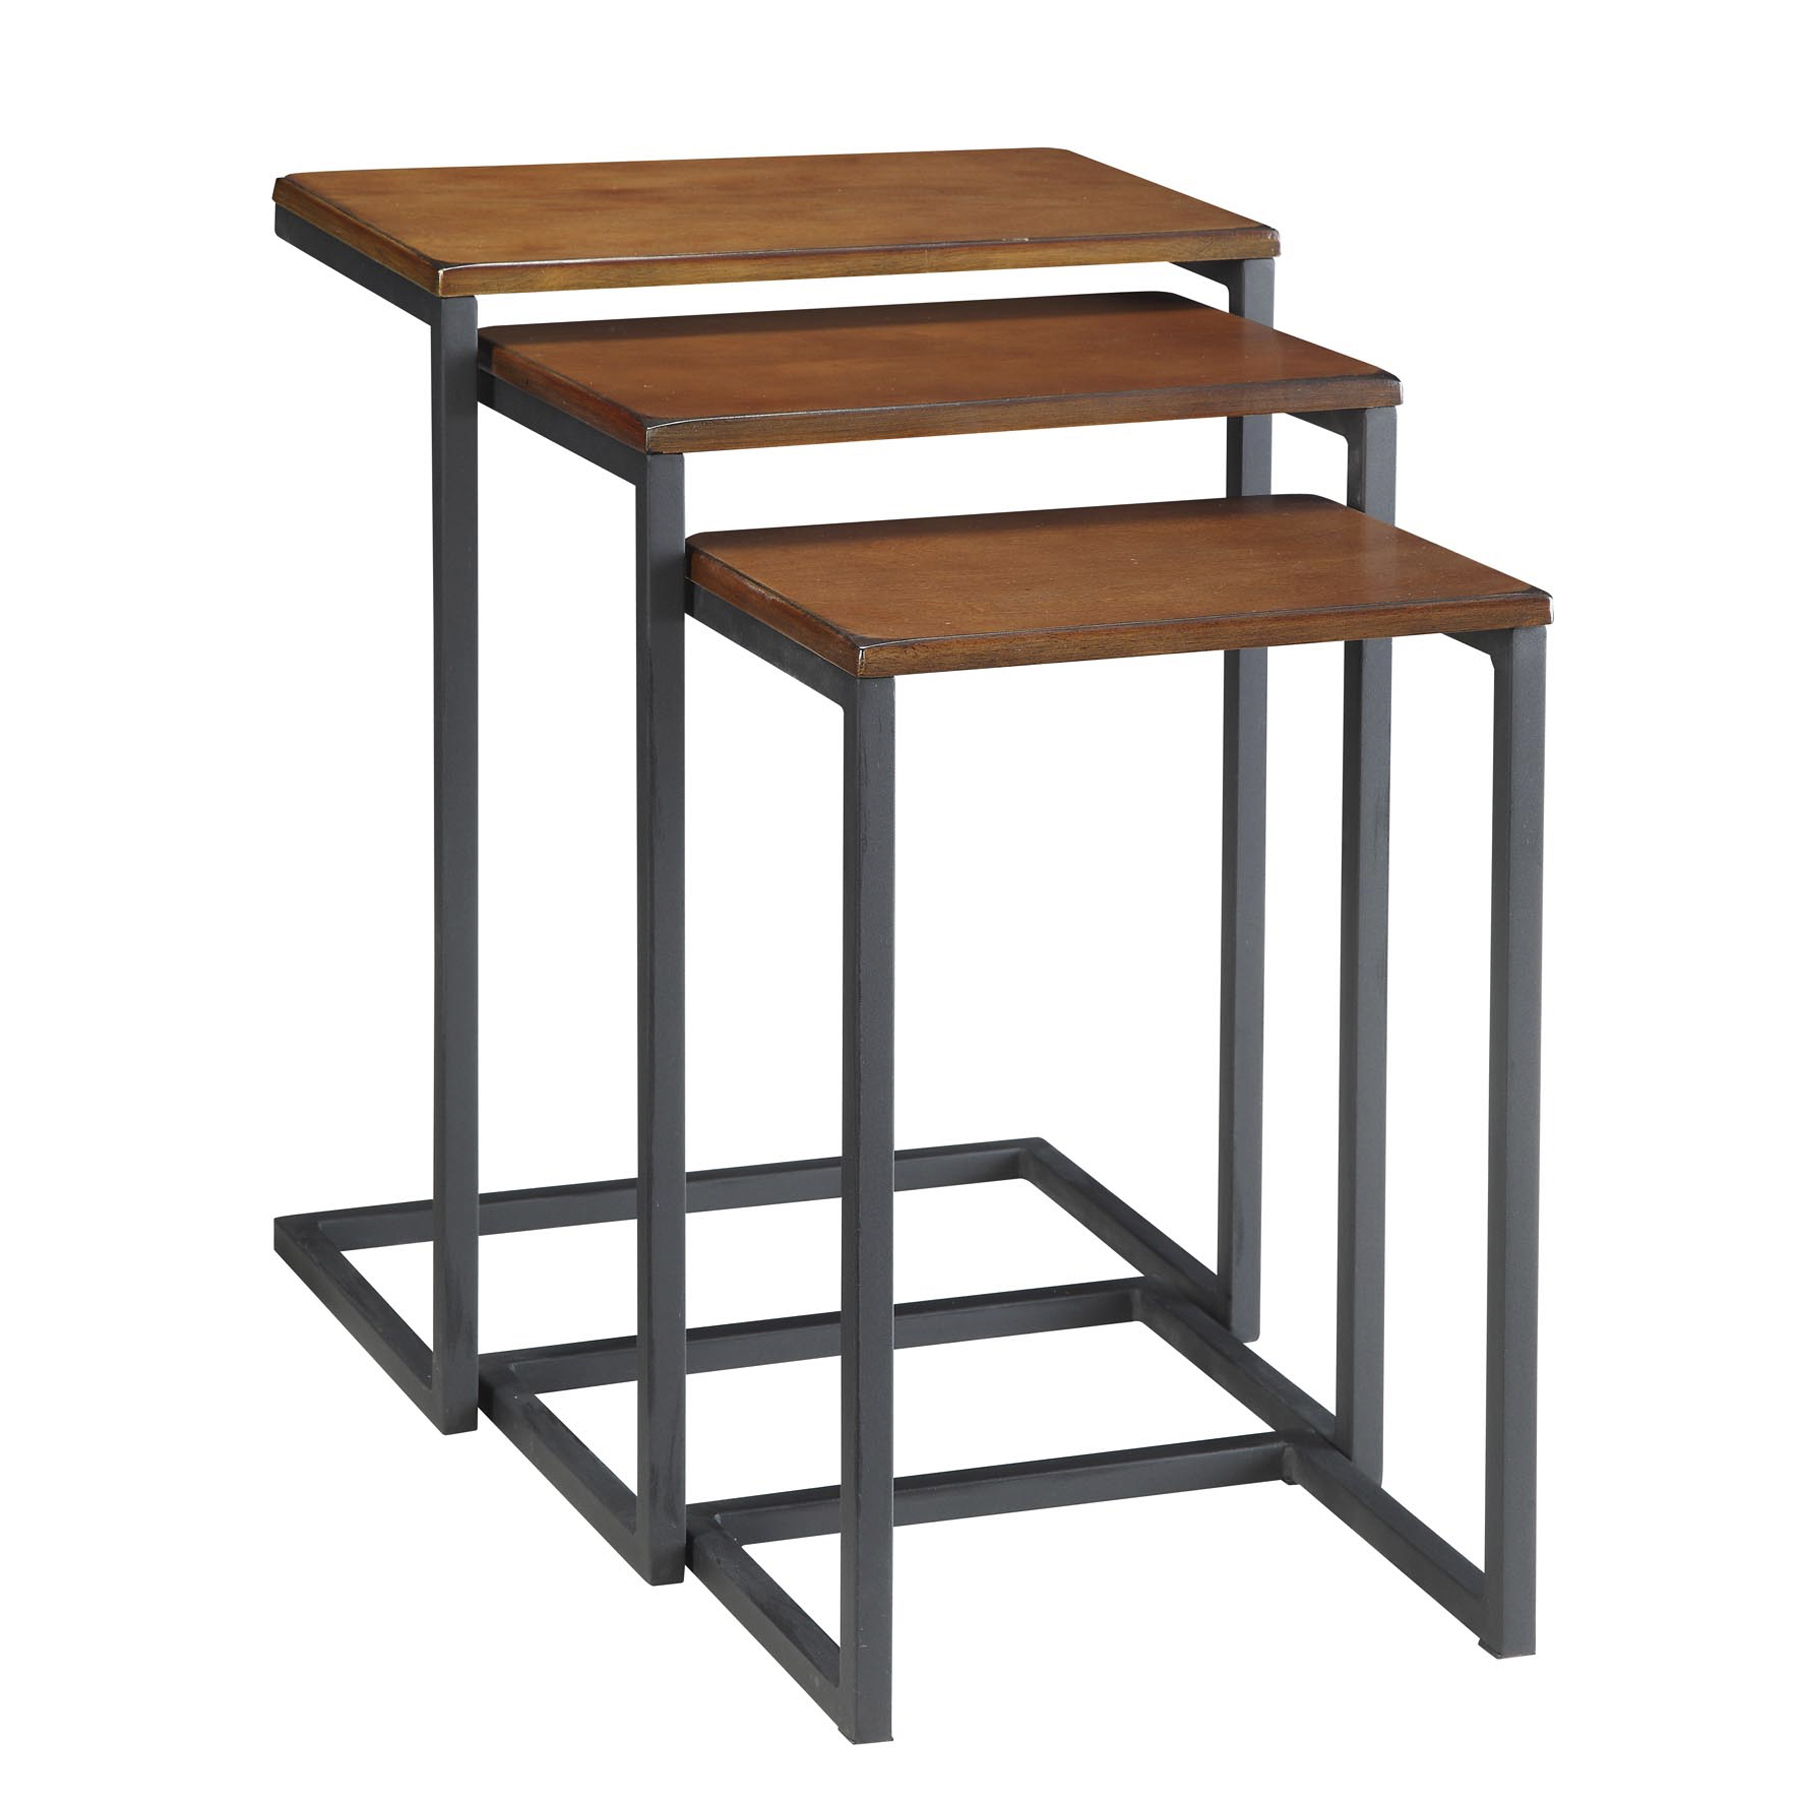 Emmitt Nesting Table Set, Chestnut/Black